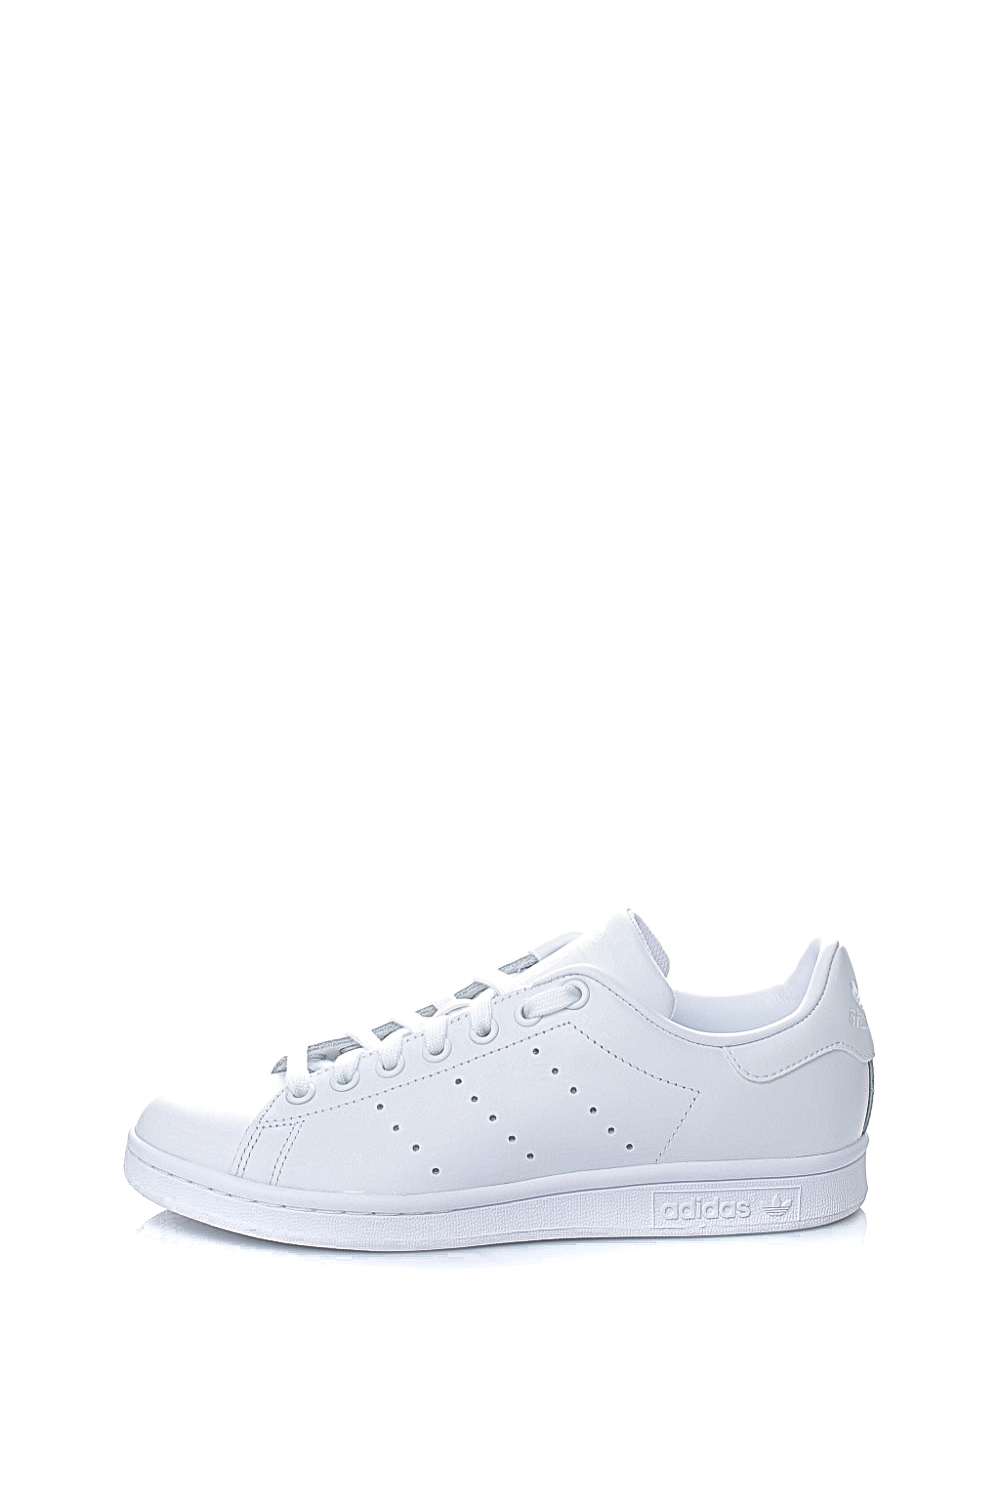 adidas Originals – Ανδρικά sneakers adidas Originals STAN SMITH λευκά